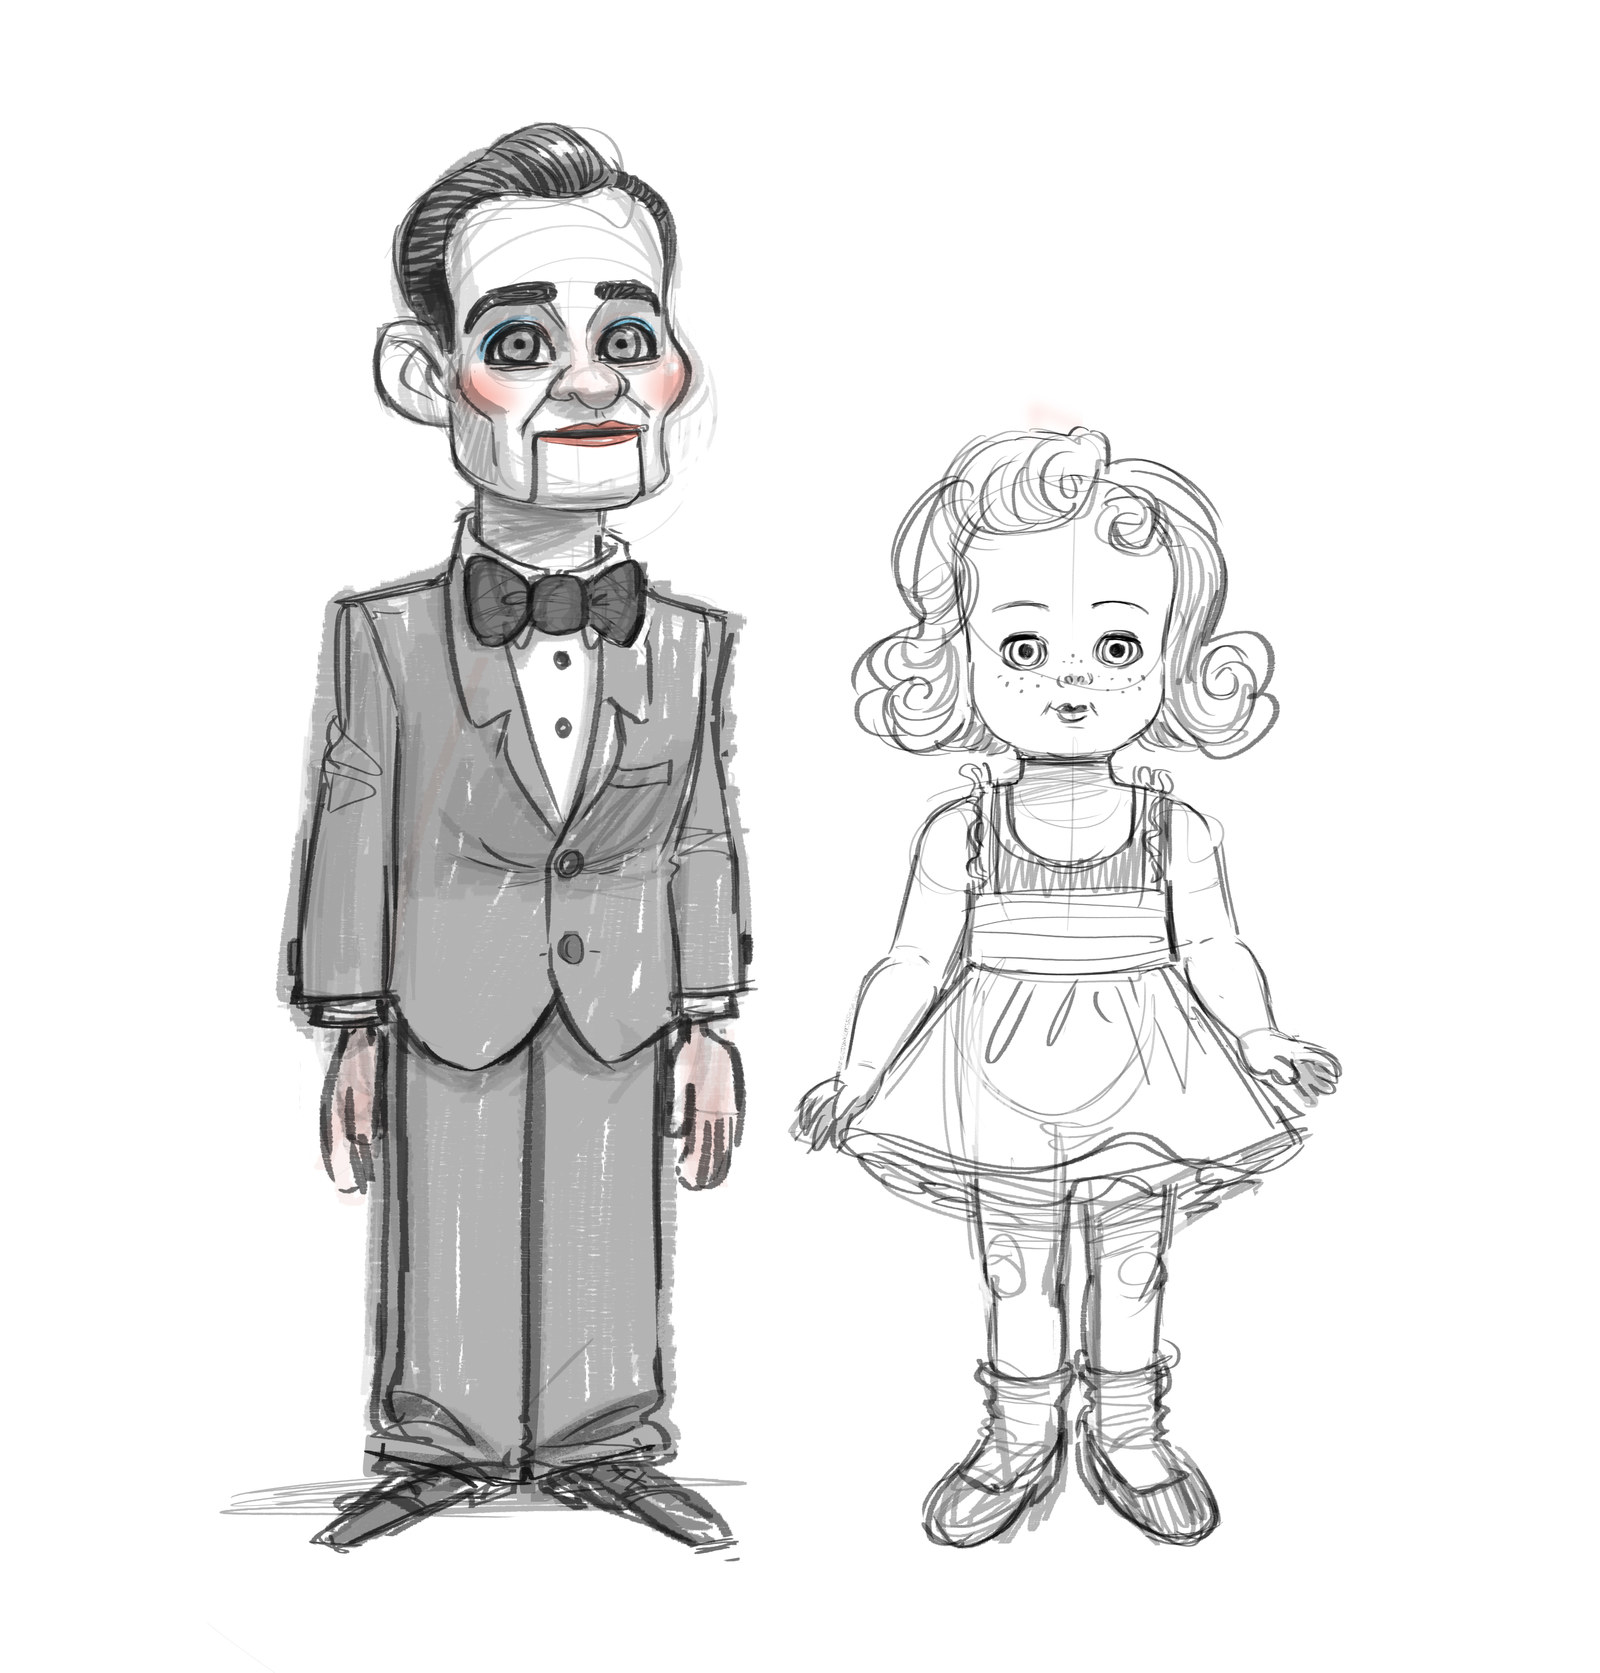 48 Toy Story 4 Facts That Will Get You Excited For The Movie